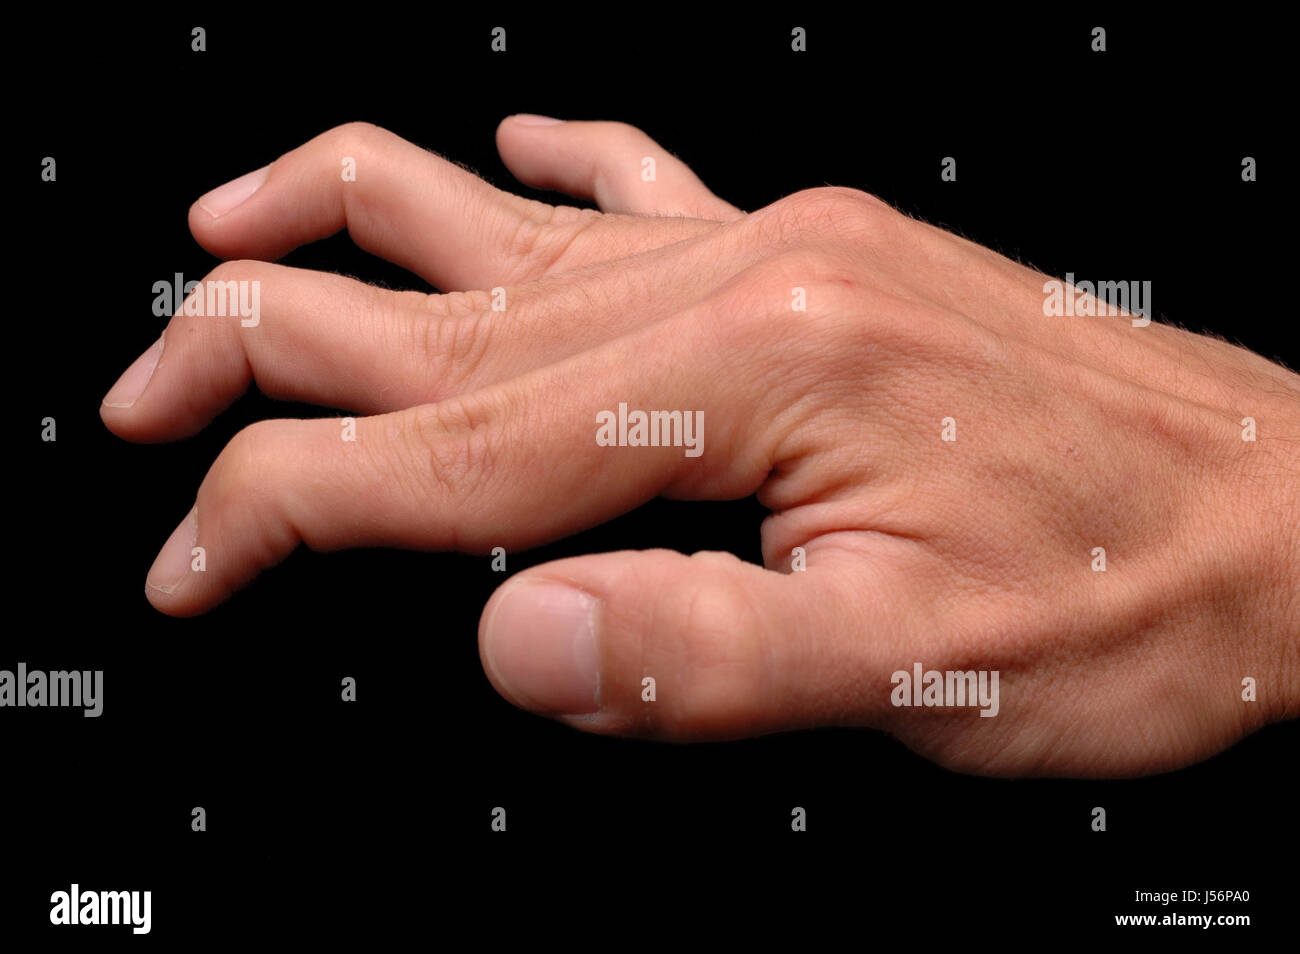 Ehlers Danlos Syndrome Ehlers Danlos Syndrome Stock Photo 140905464 Alamy